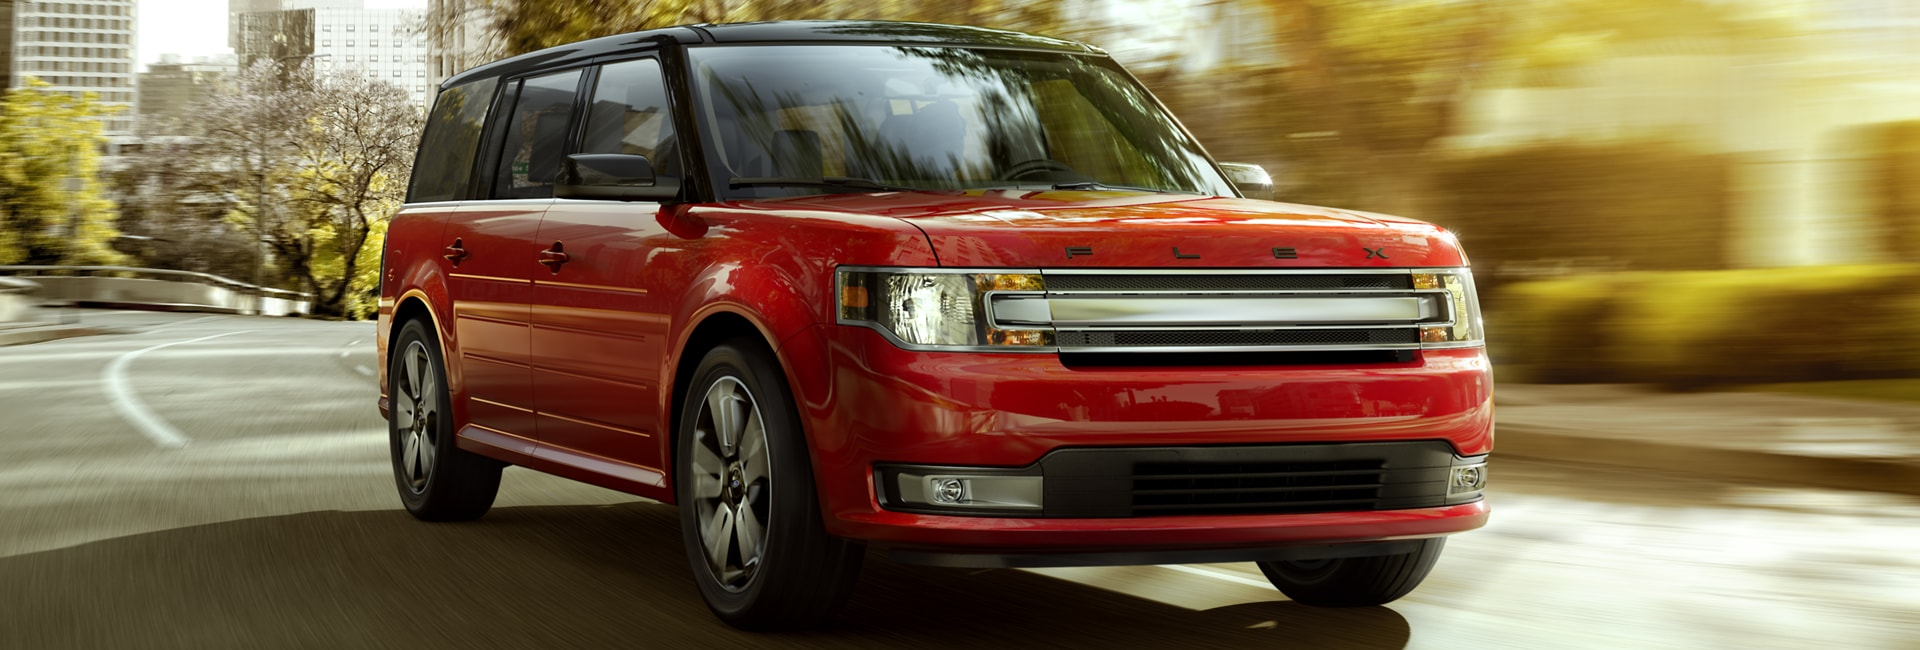 Ford Flex Exterior Vehicle Features